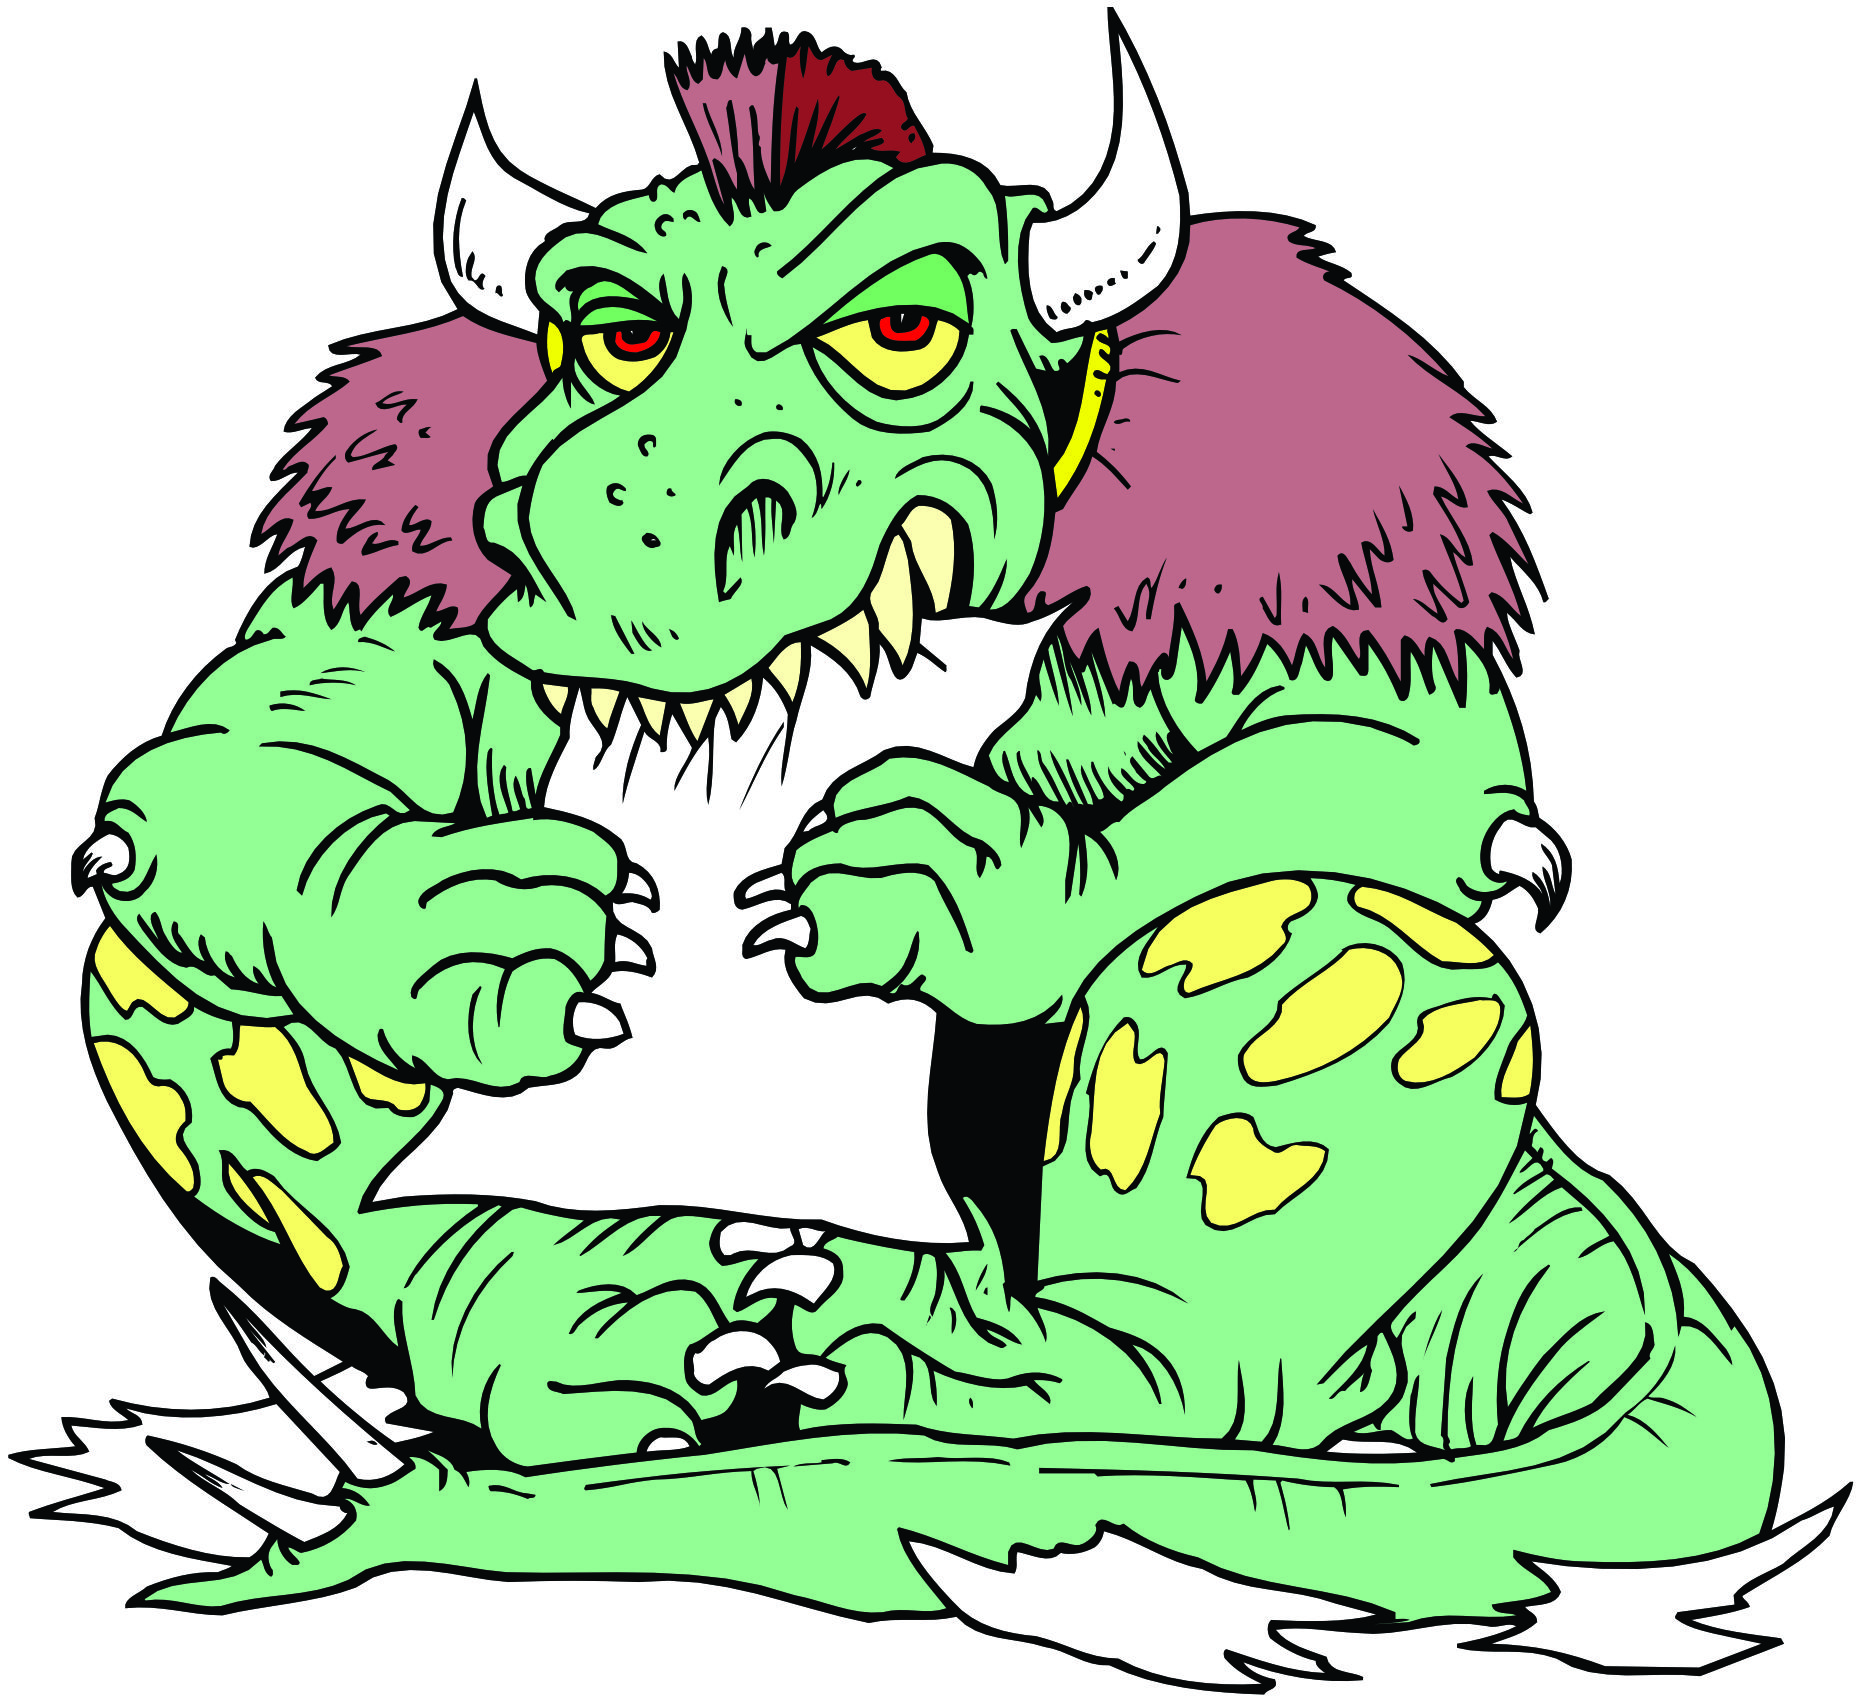 Dragon Monster Mascot